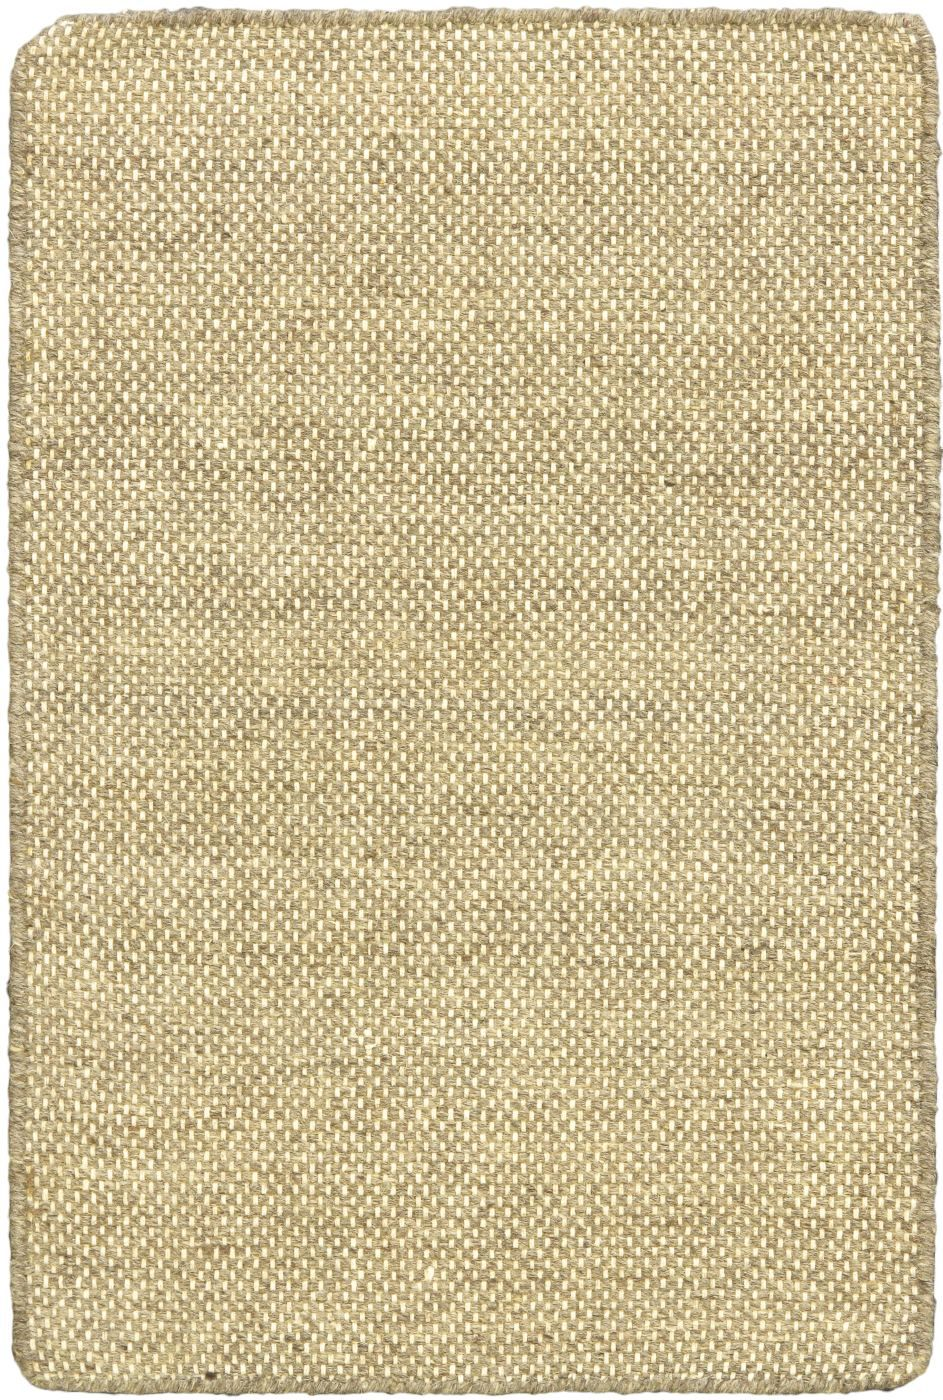 ecarpet gallery natural plush solid/striped area rug collection